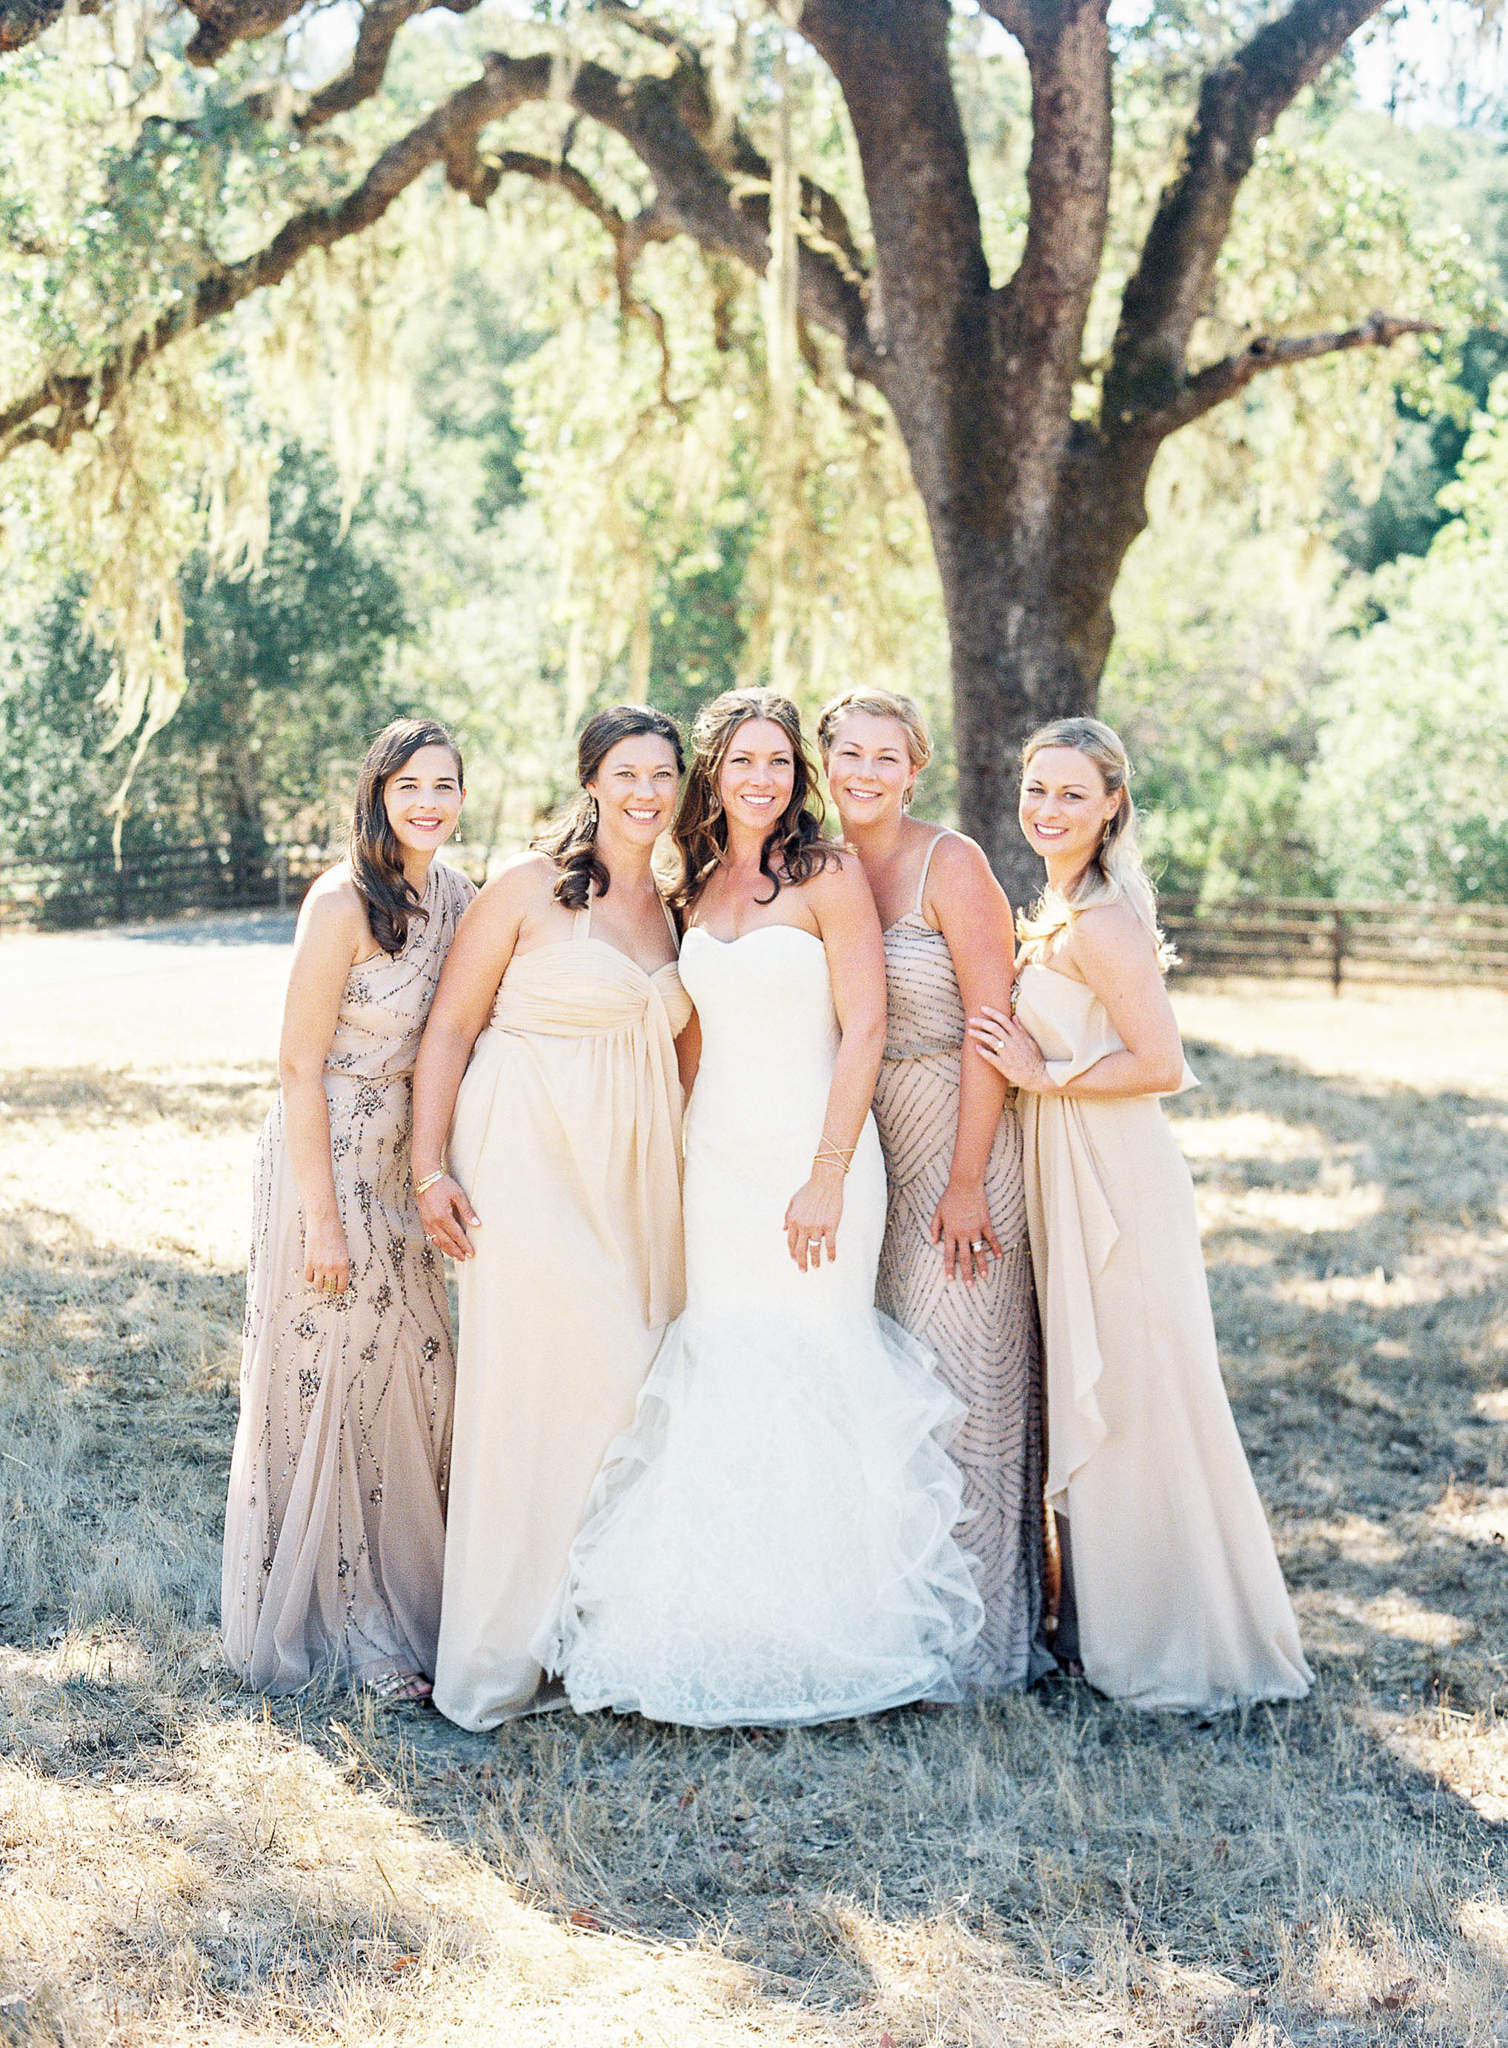 Meghan Mehan Photography - Fine Art Film Wedding Photography - San Francisco | Napa | Sonoma | Big Sur | Chicago | Minneapolis | Milwaukee | Lake Geneva | Door County | Wisconsin 033.jpg